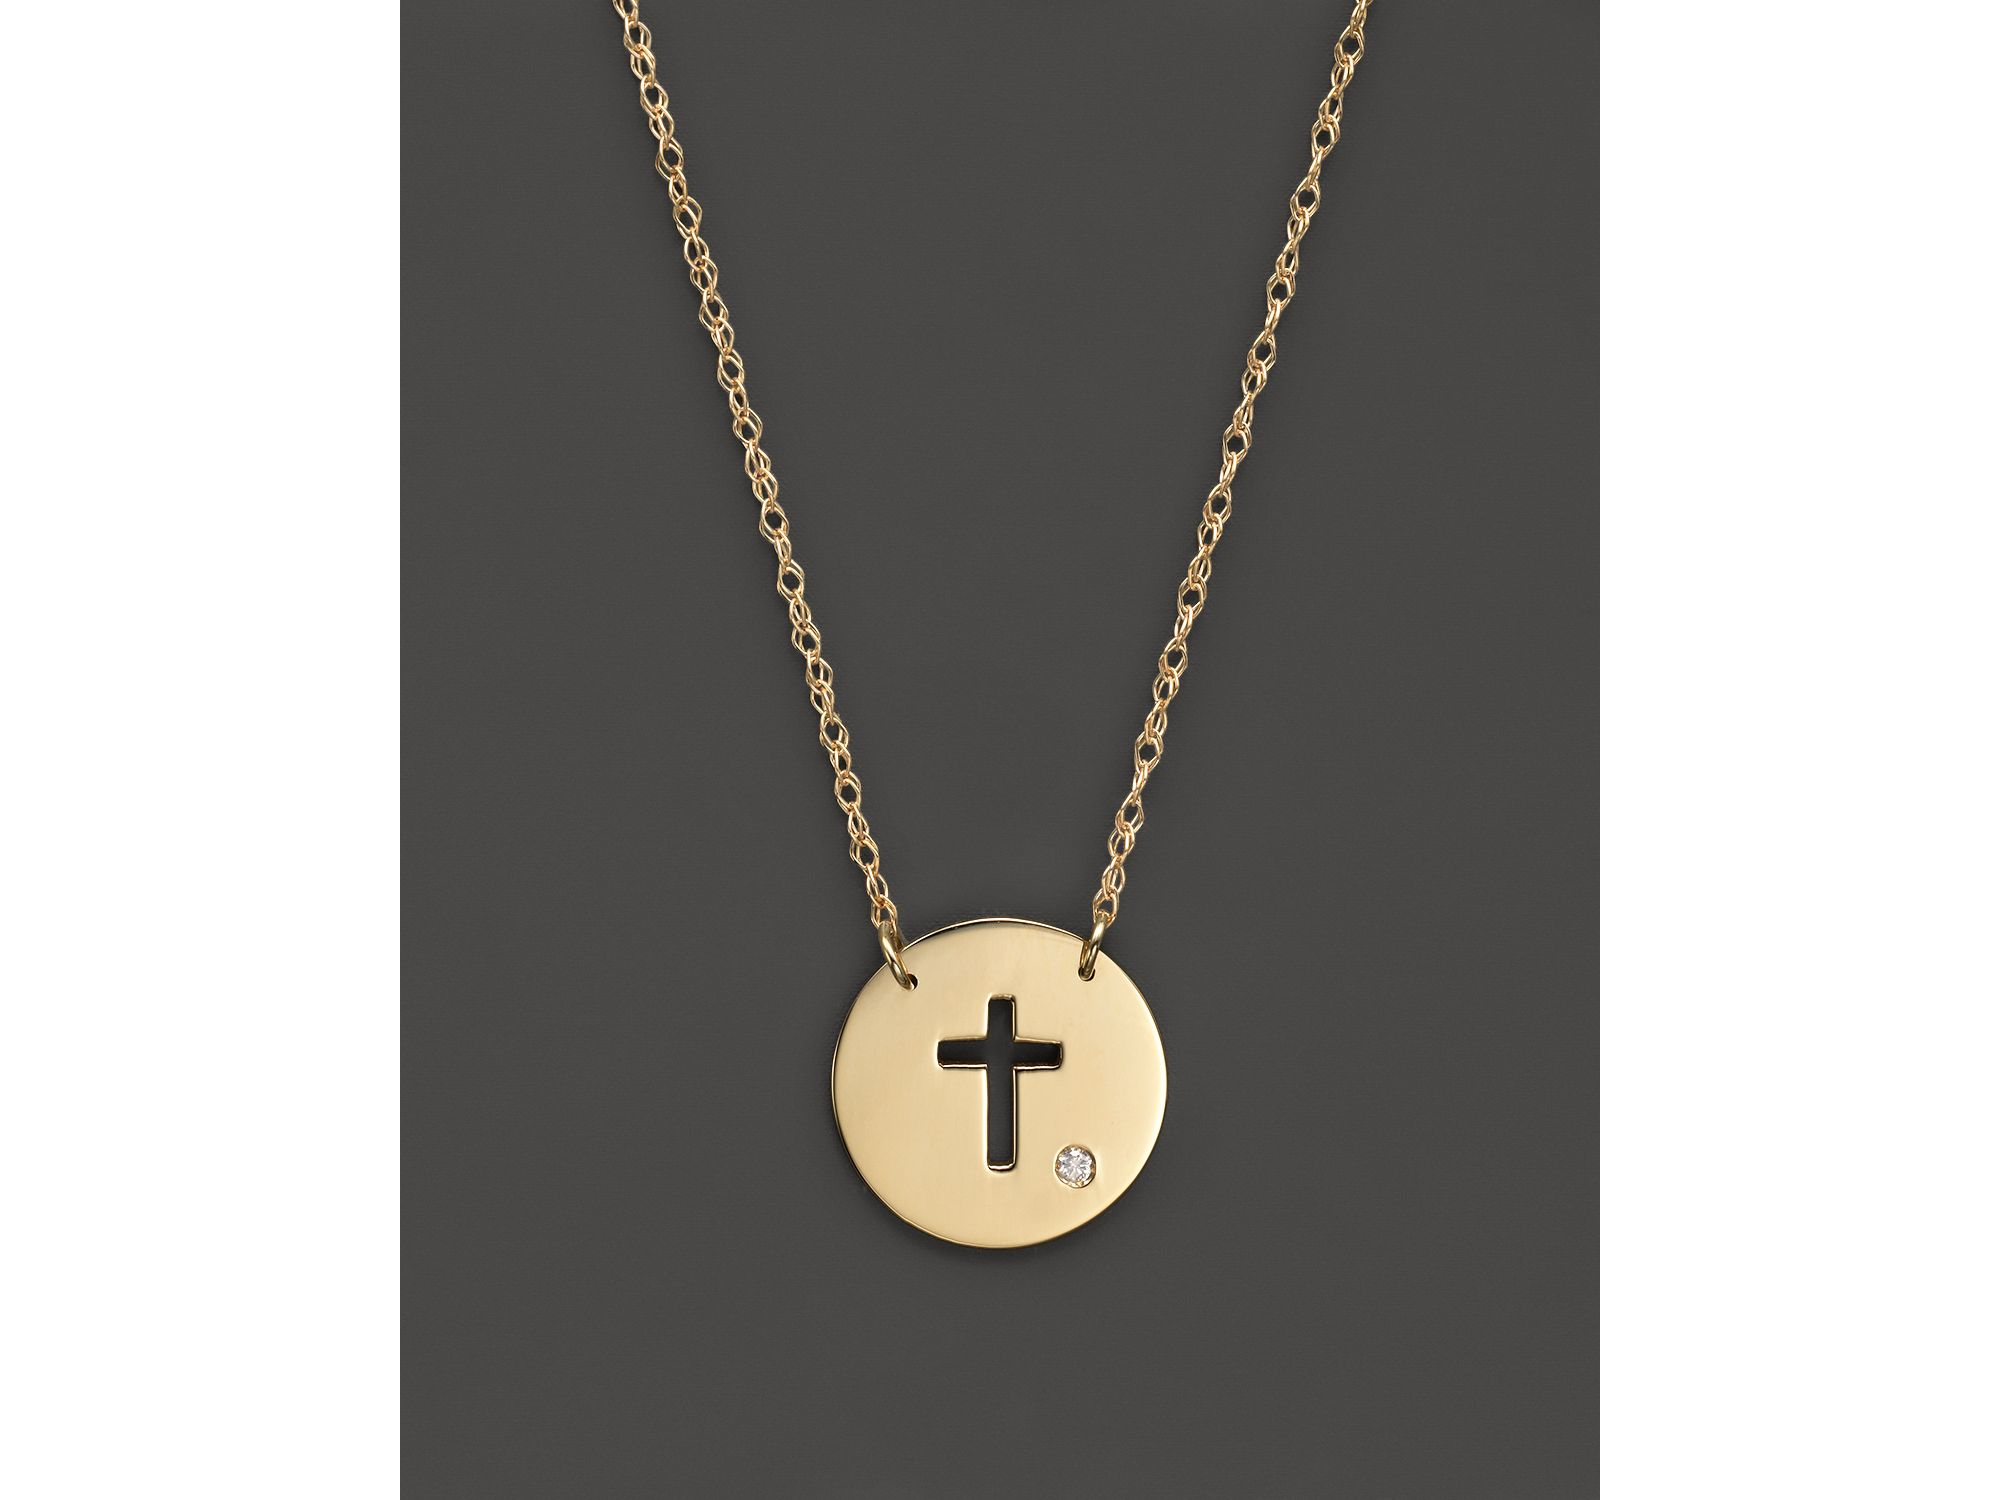 Jane basch 14k Yellow Gold Cut Out Cross Disc Pendant Necklace 16